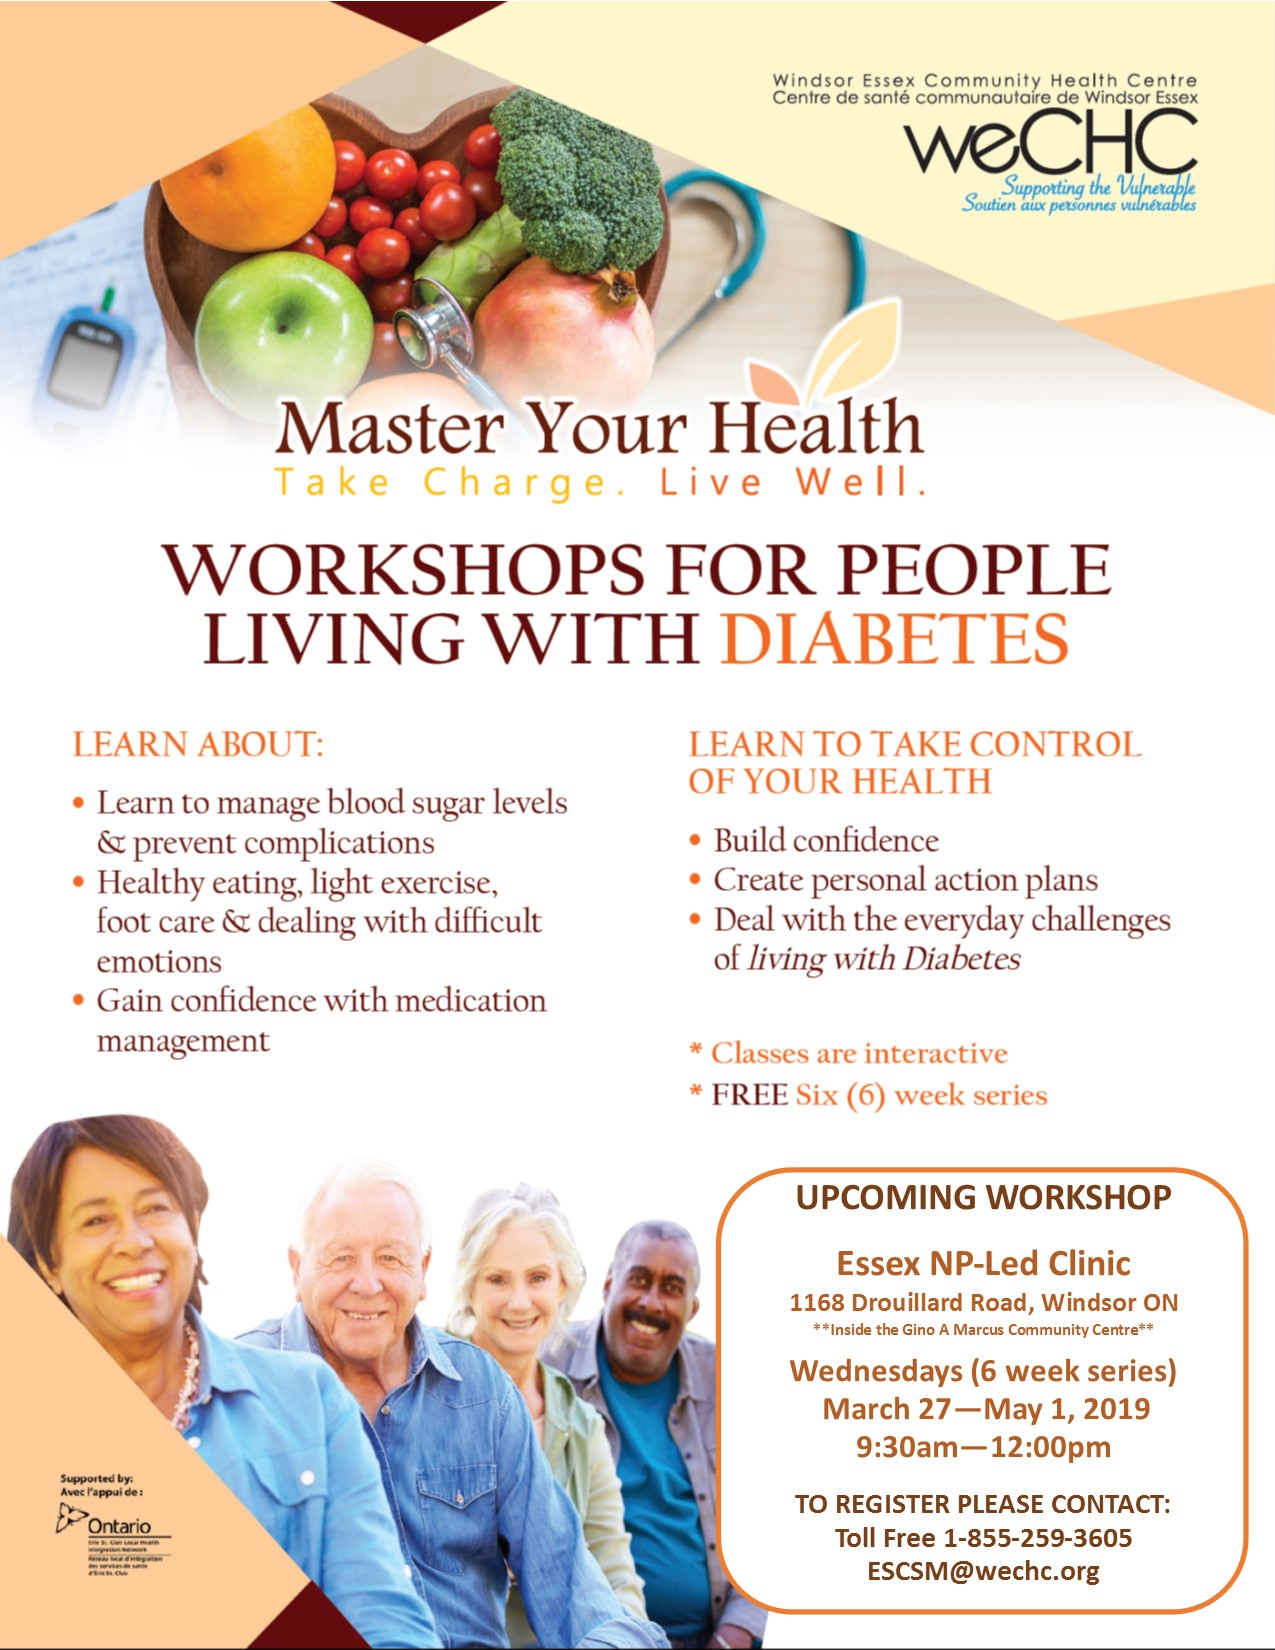 MASTER YOUR HEALTH – Diabetes Education Series @ Essex County NP-Led Clinic (Windsor)